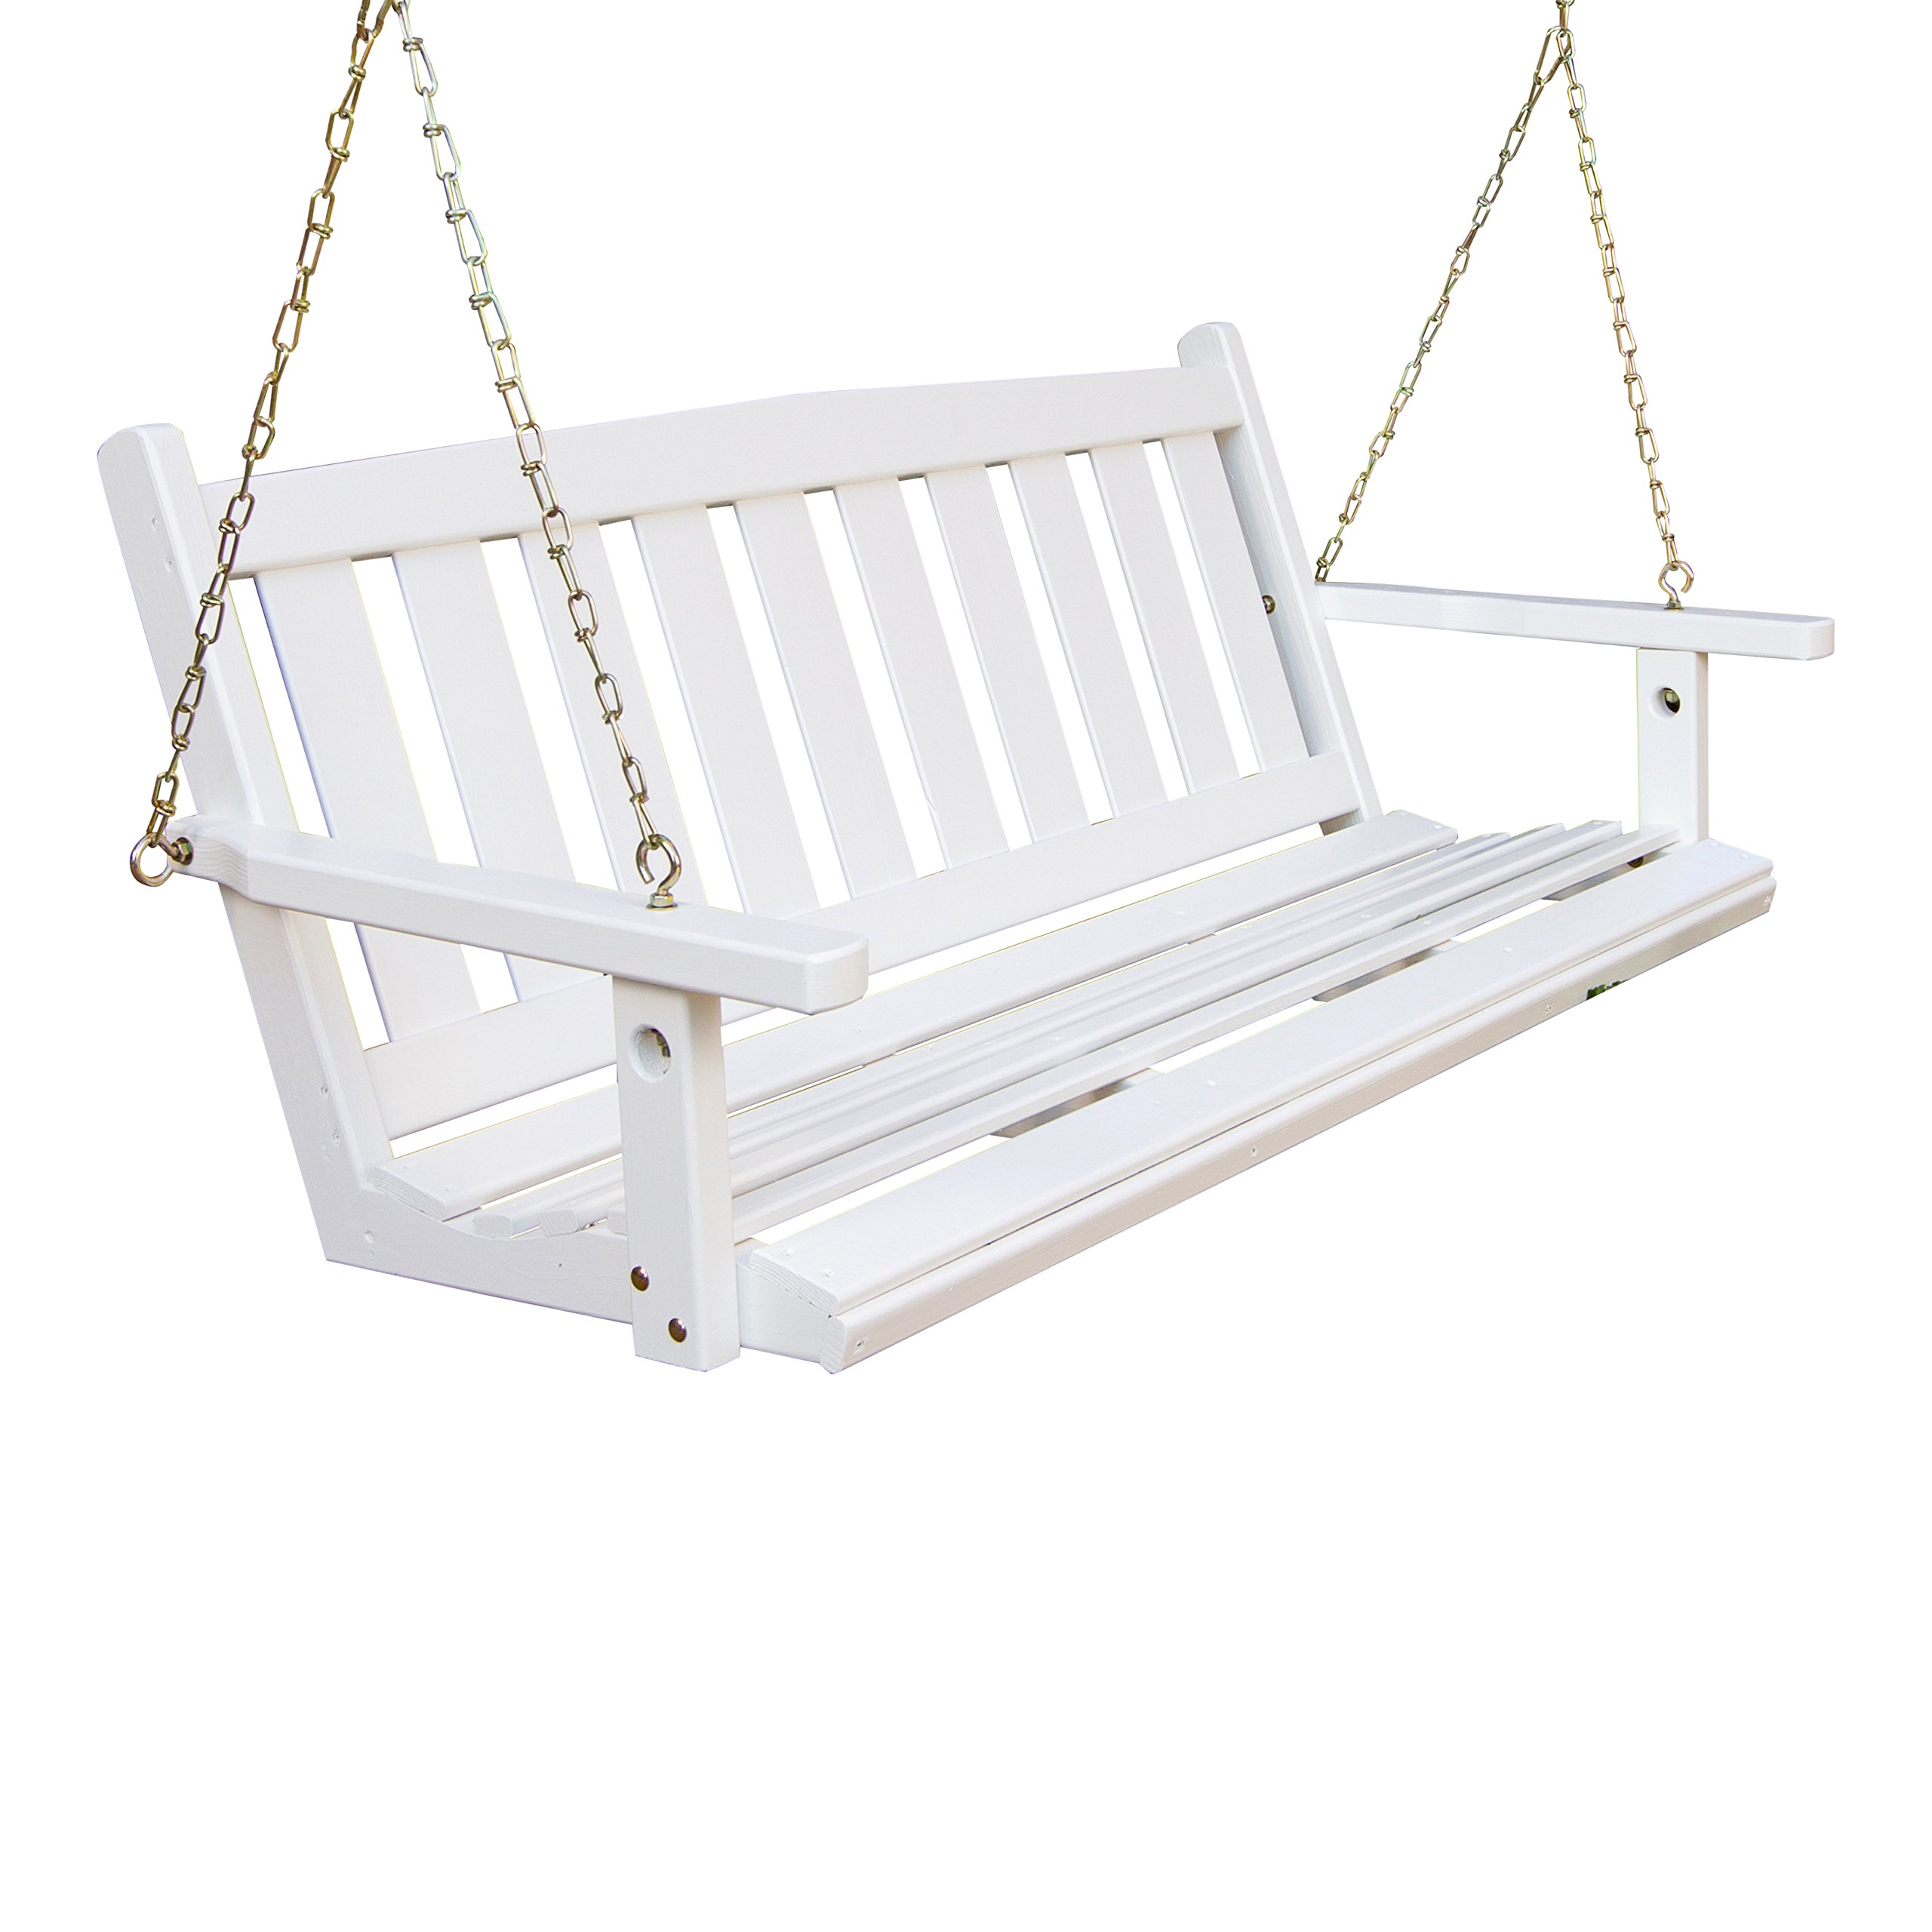 Porchgate Amish Made Mission White Porch Swing (5 Foot) by Porchgate